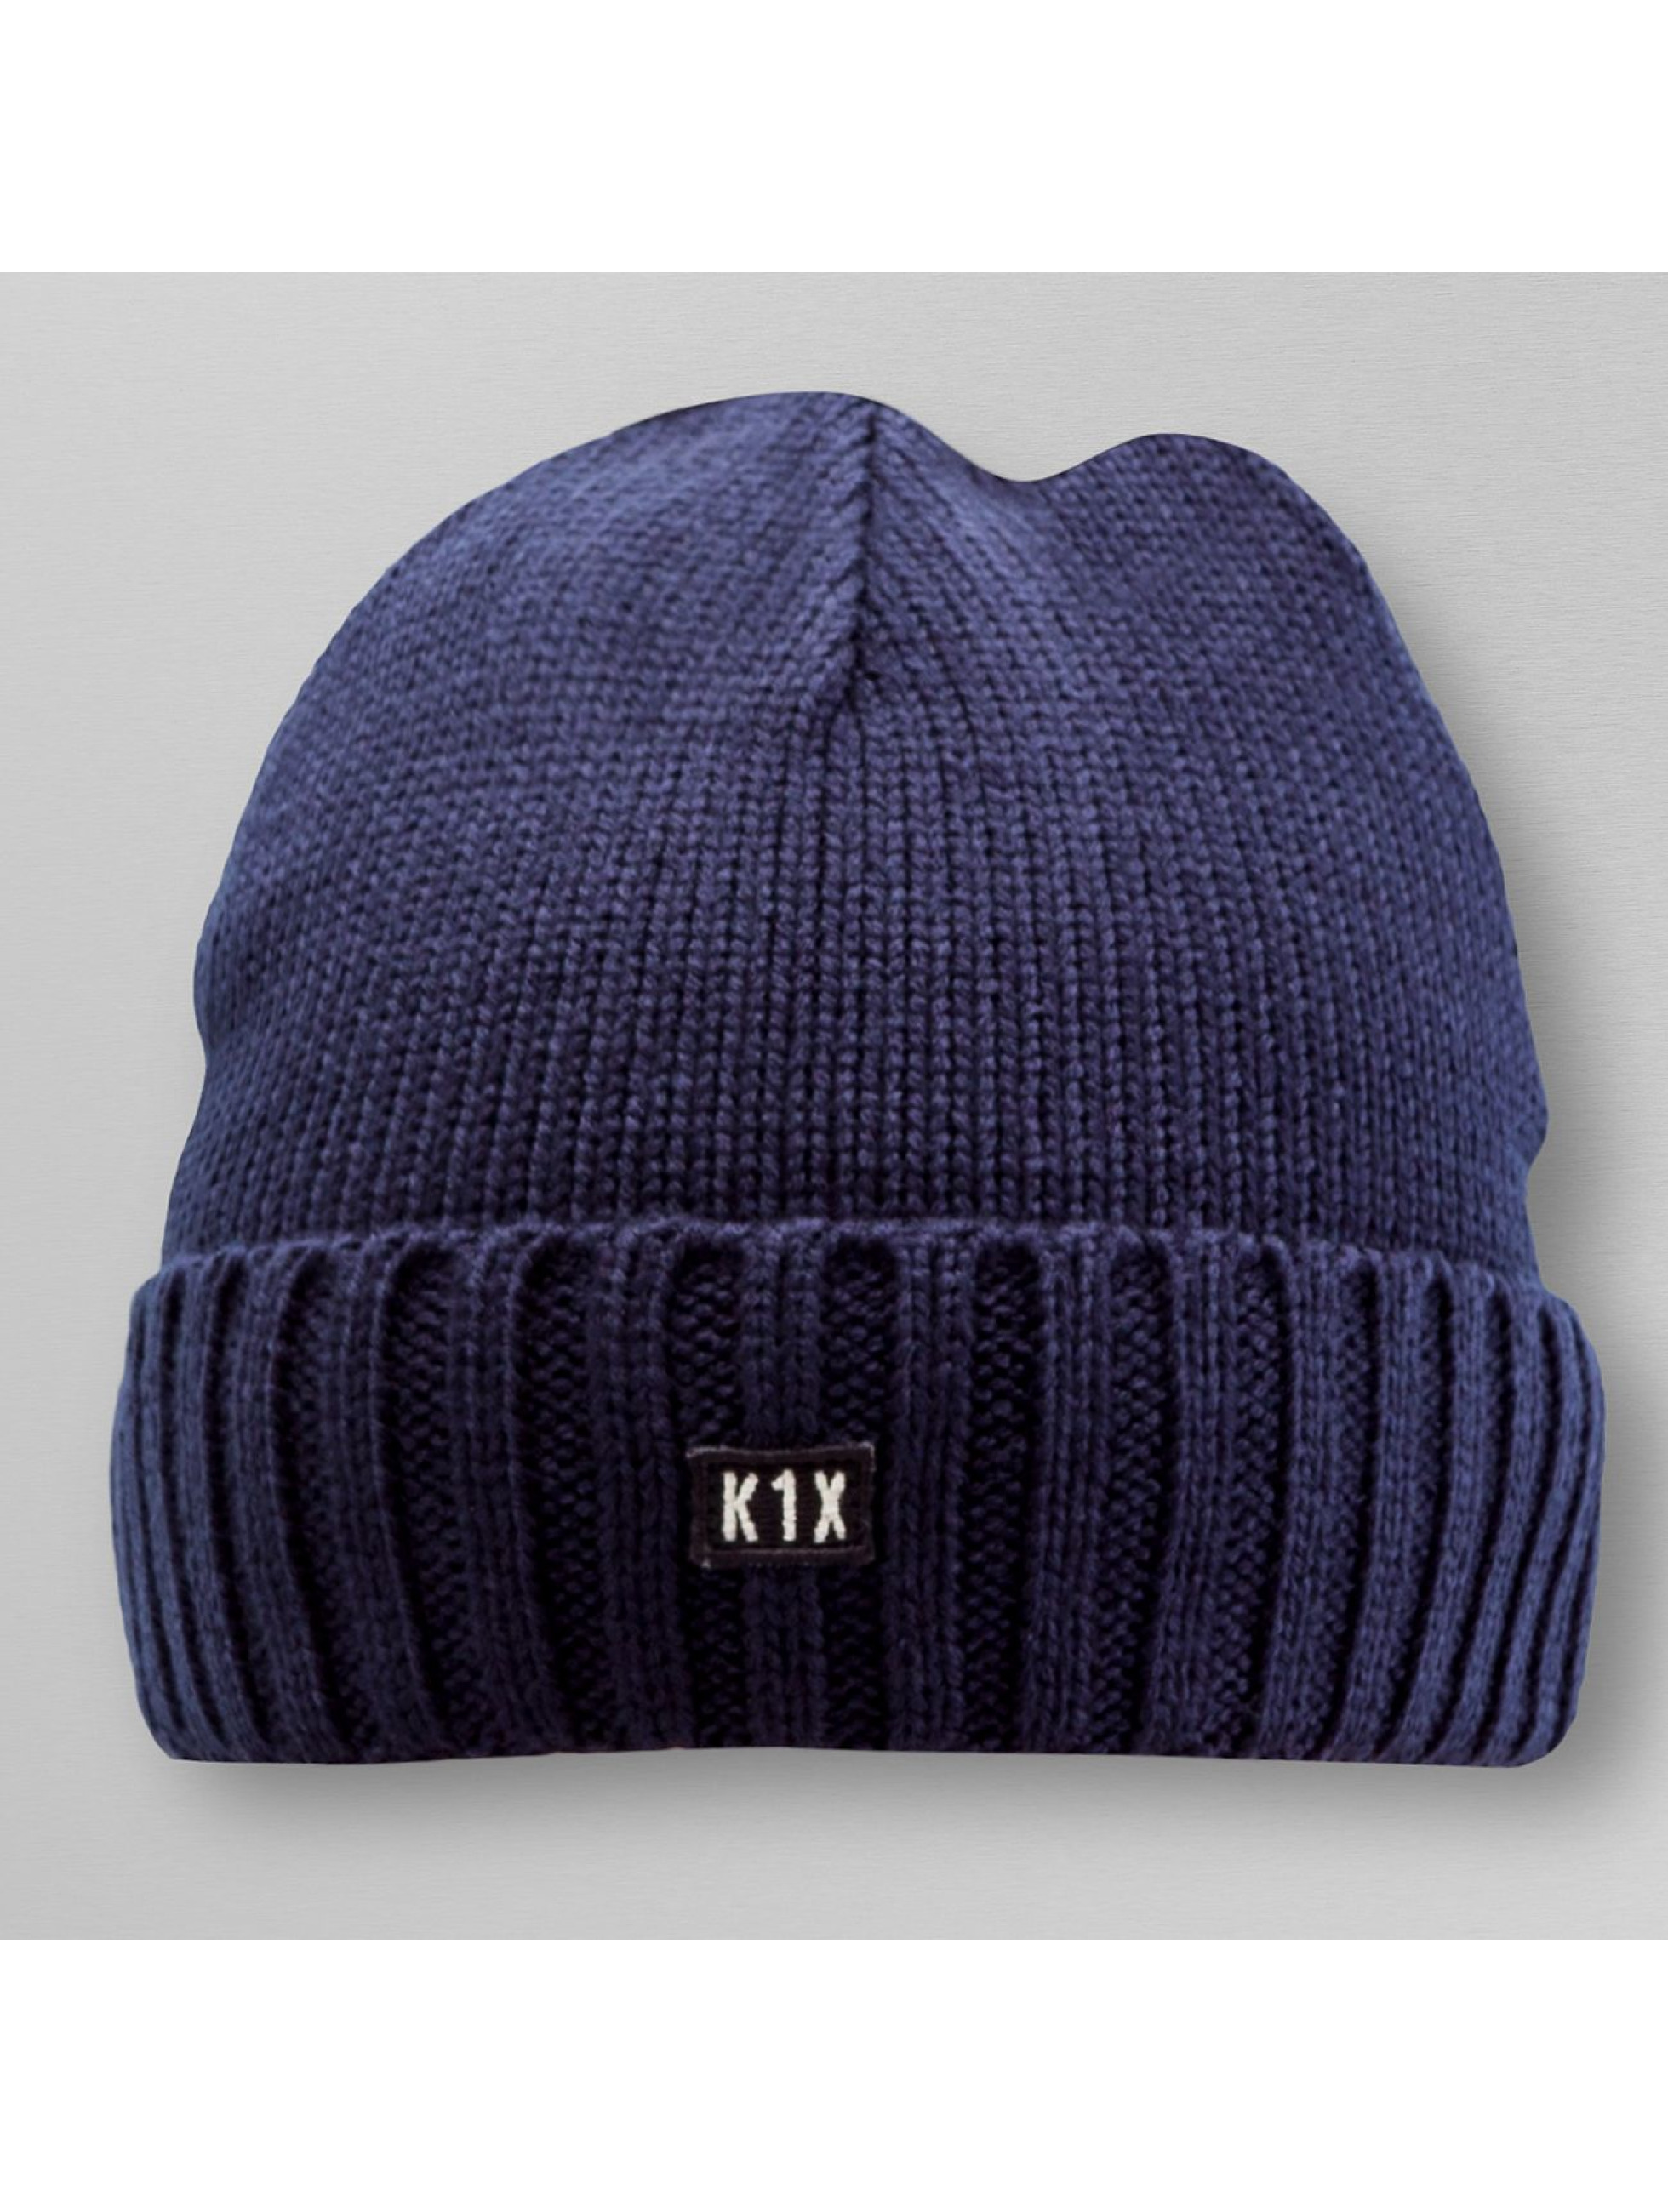 K1X Beanie Authentic Knit blau